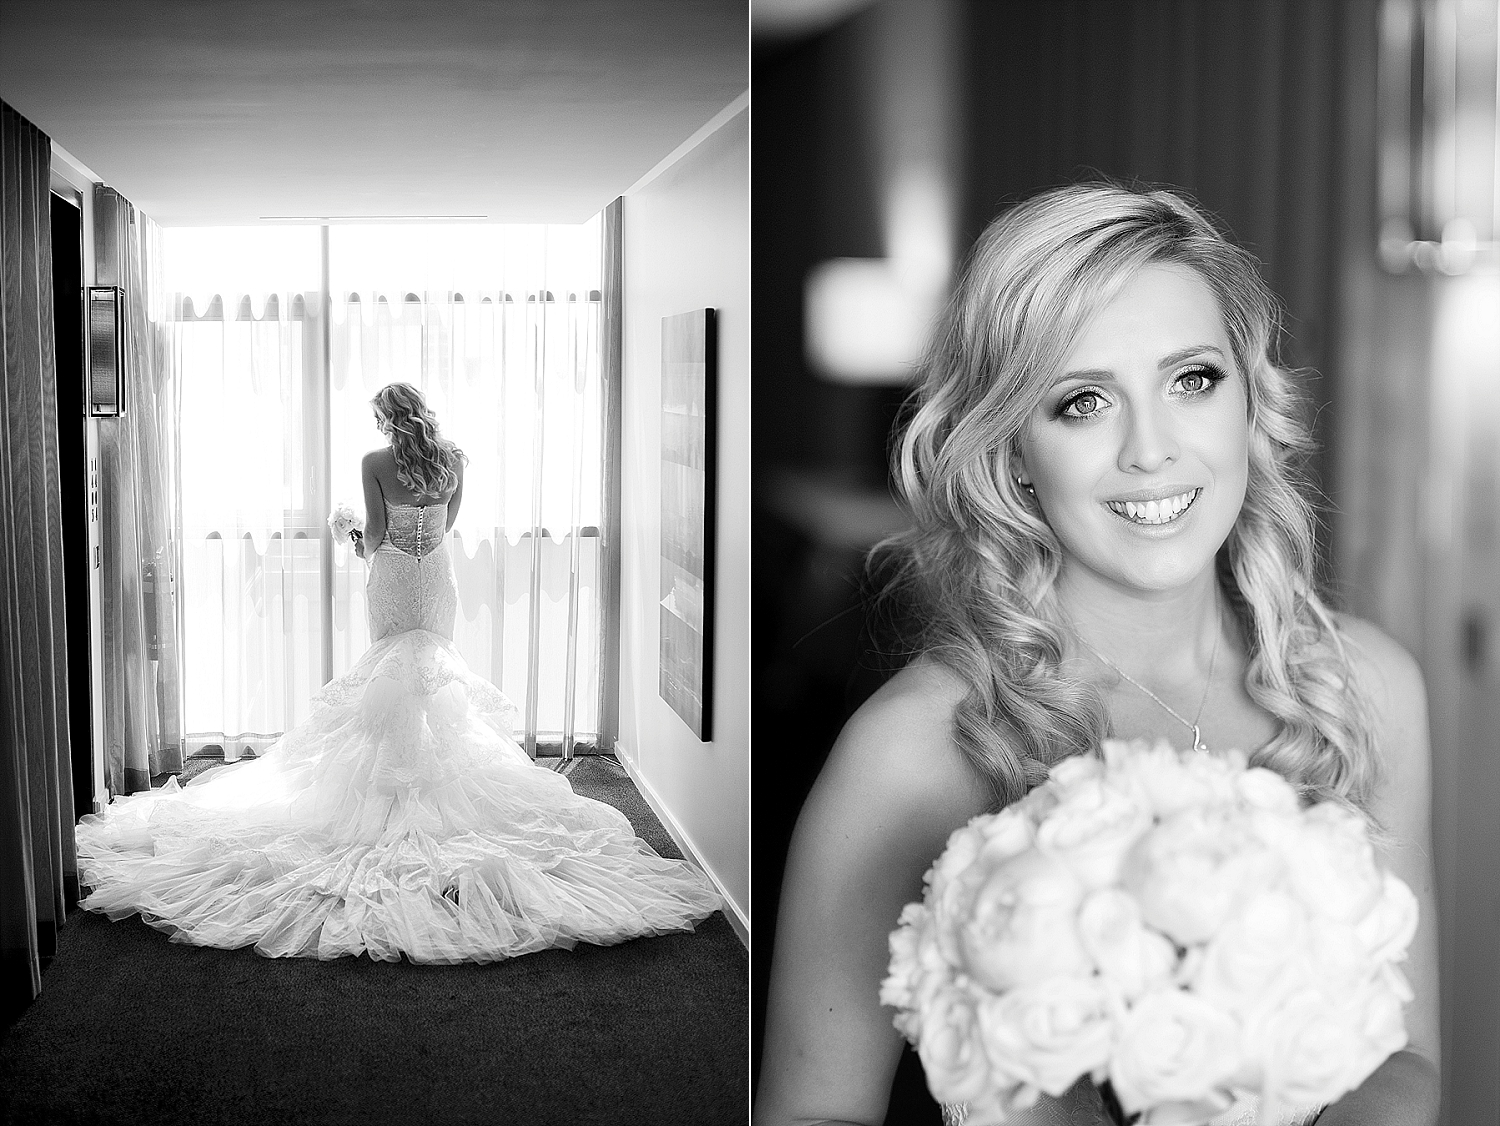 09_st josephs state reception centre wedding perth pronovias gown.jpg